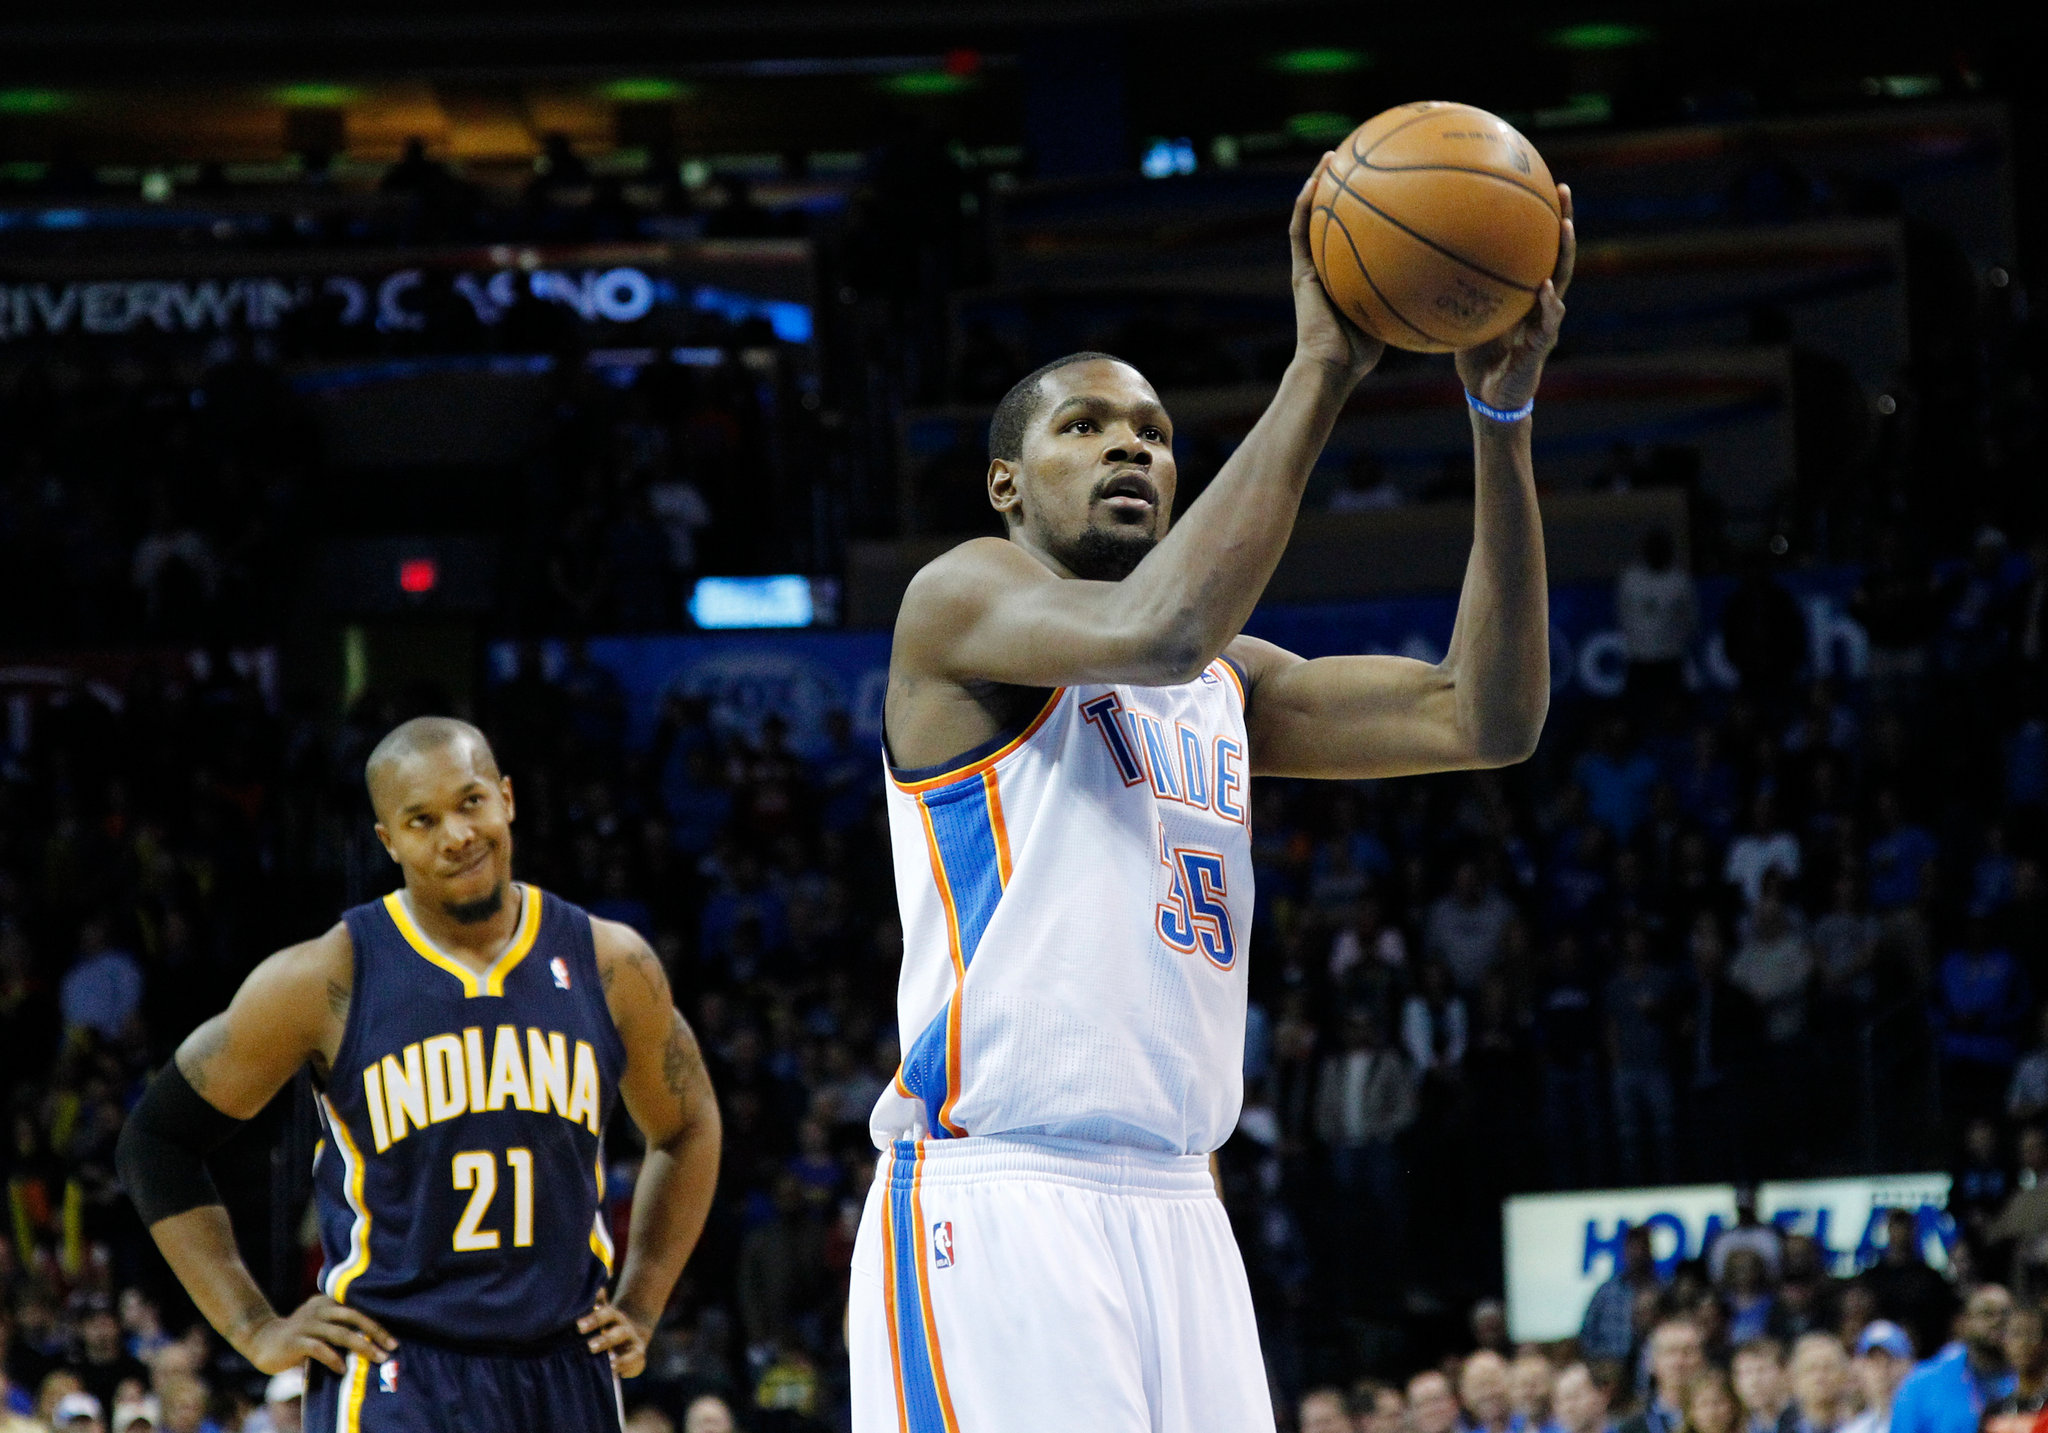 kevin durant shooting displaying 11 images for kevin durant shooting 2048x1433